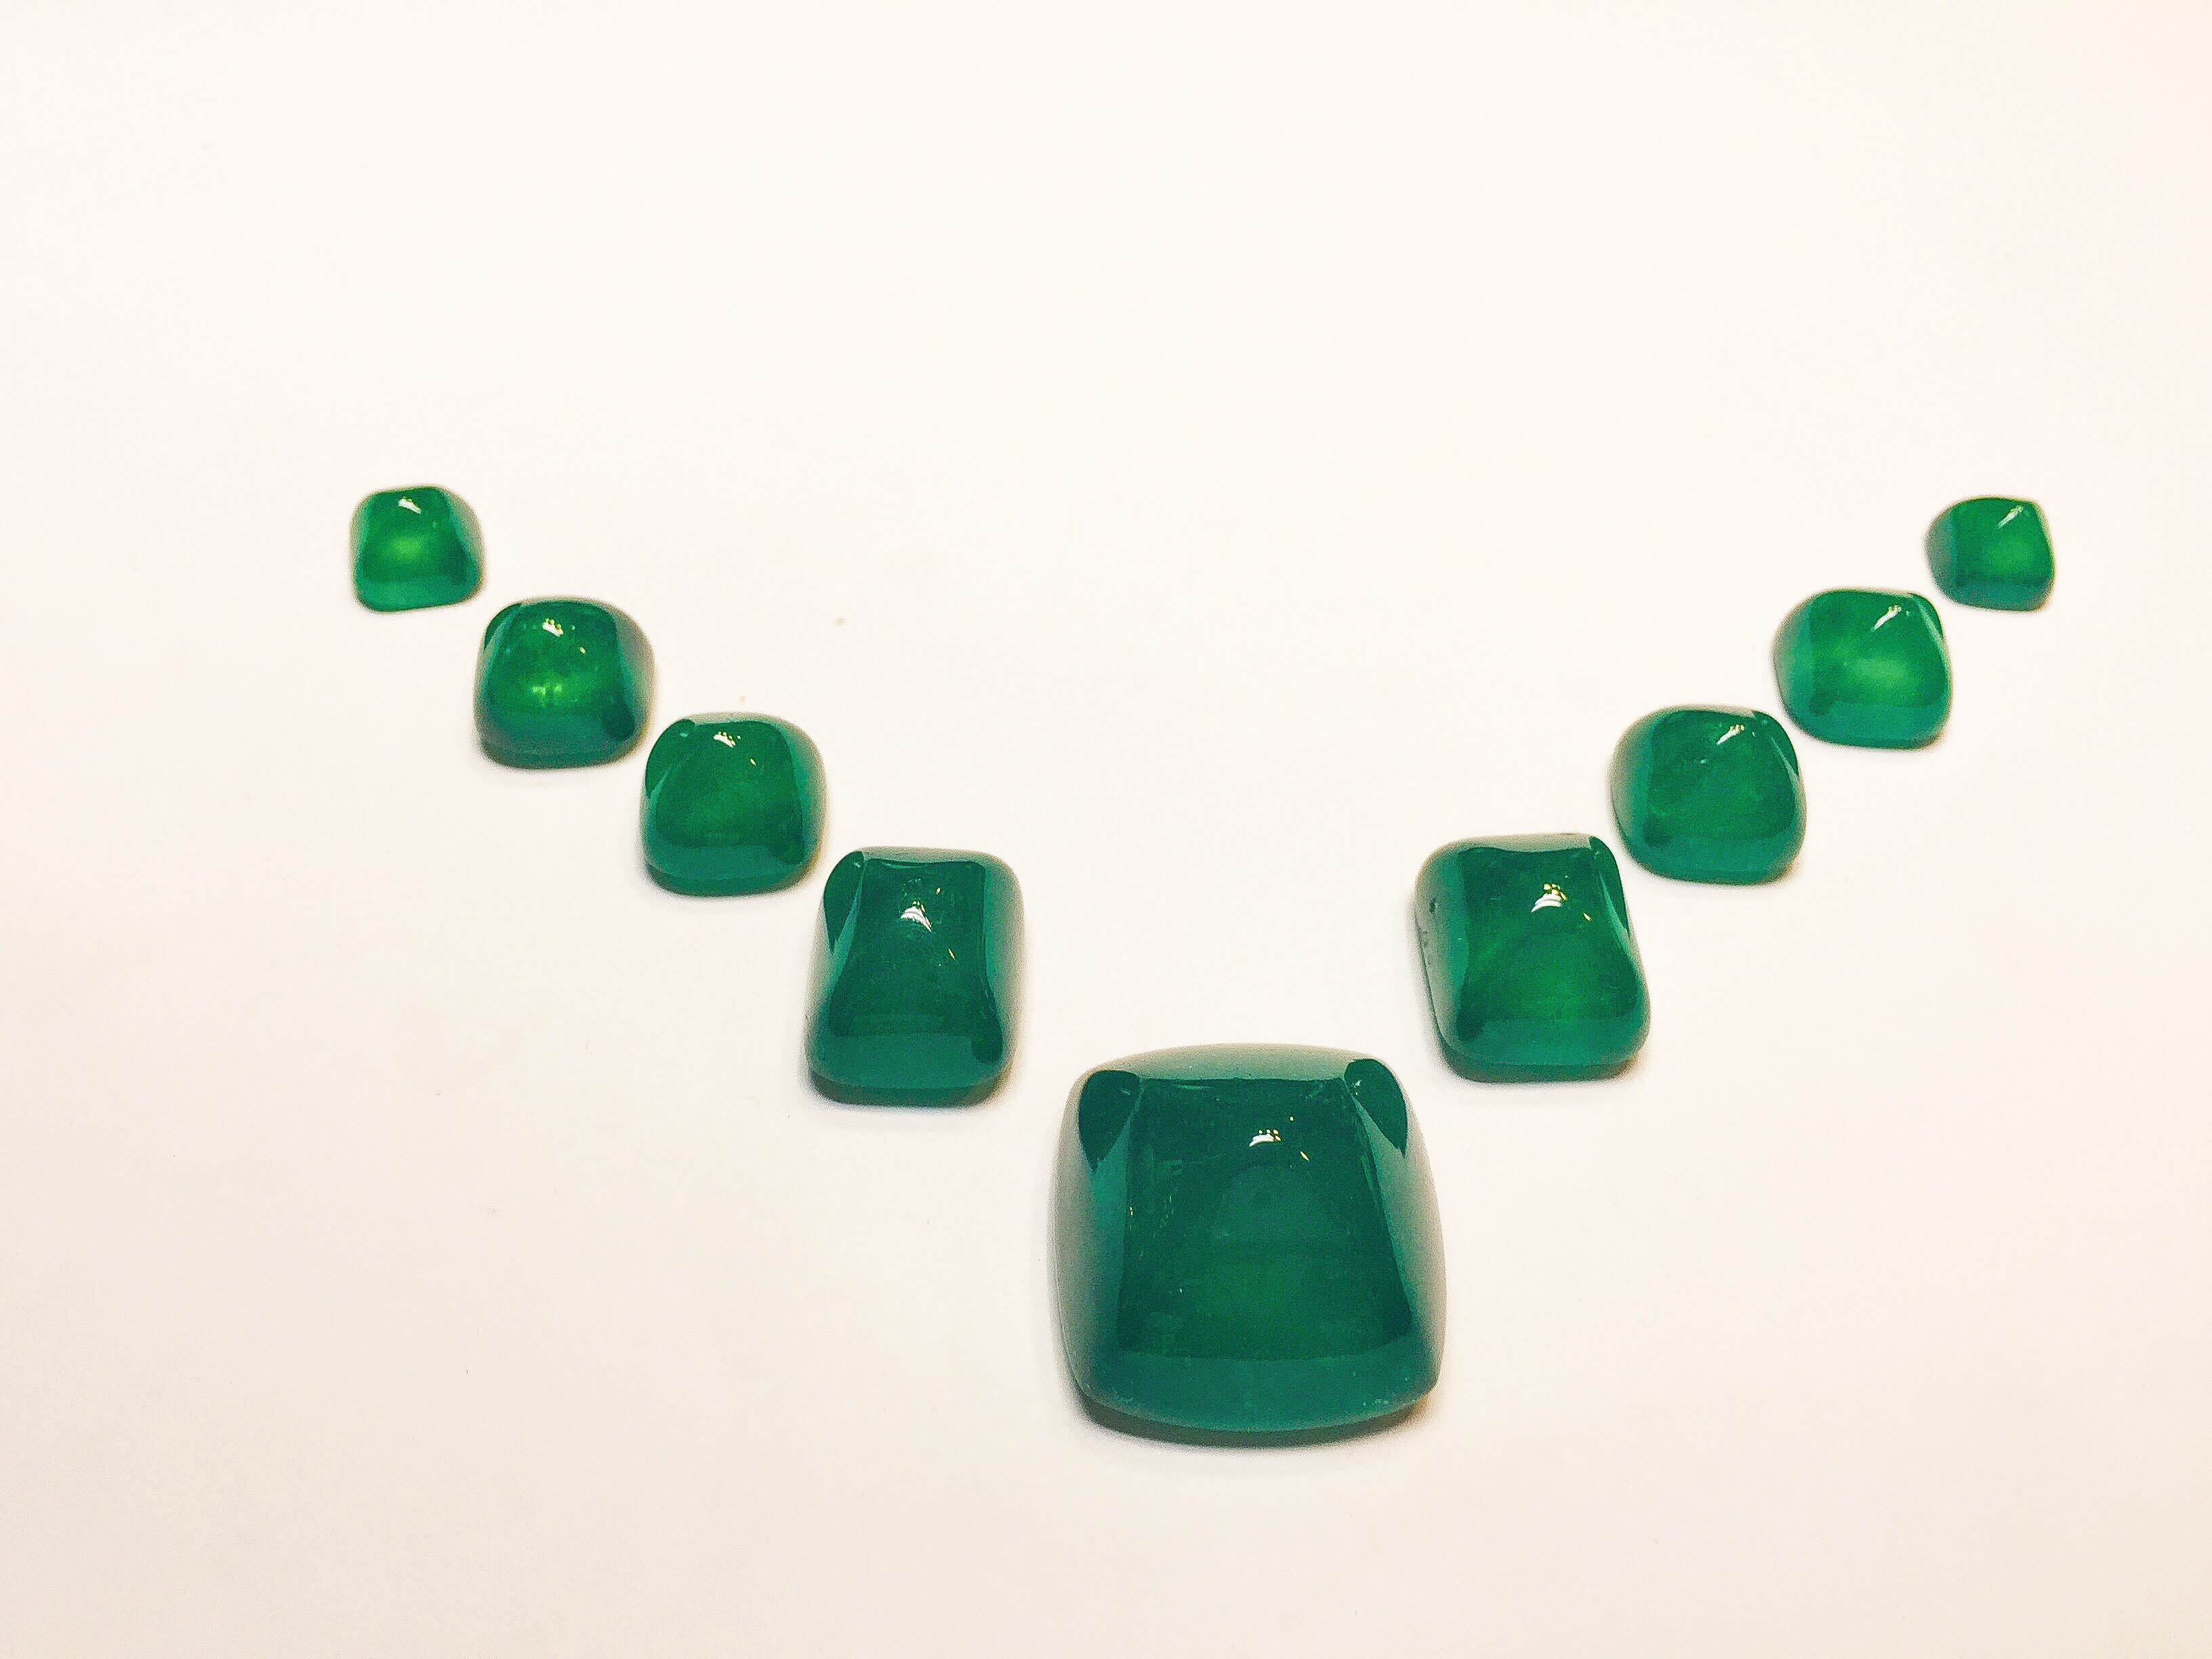 One-of-a-Kind Set of 9 Sugarloaf Colombian Emeralds totaling 378ct